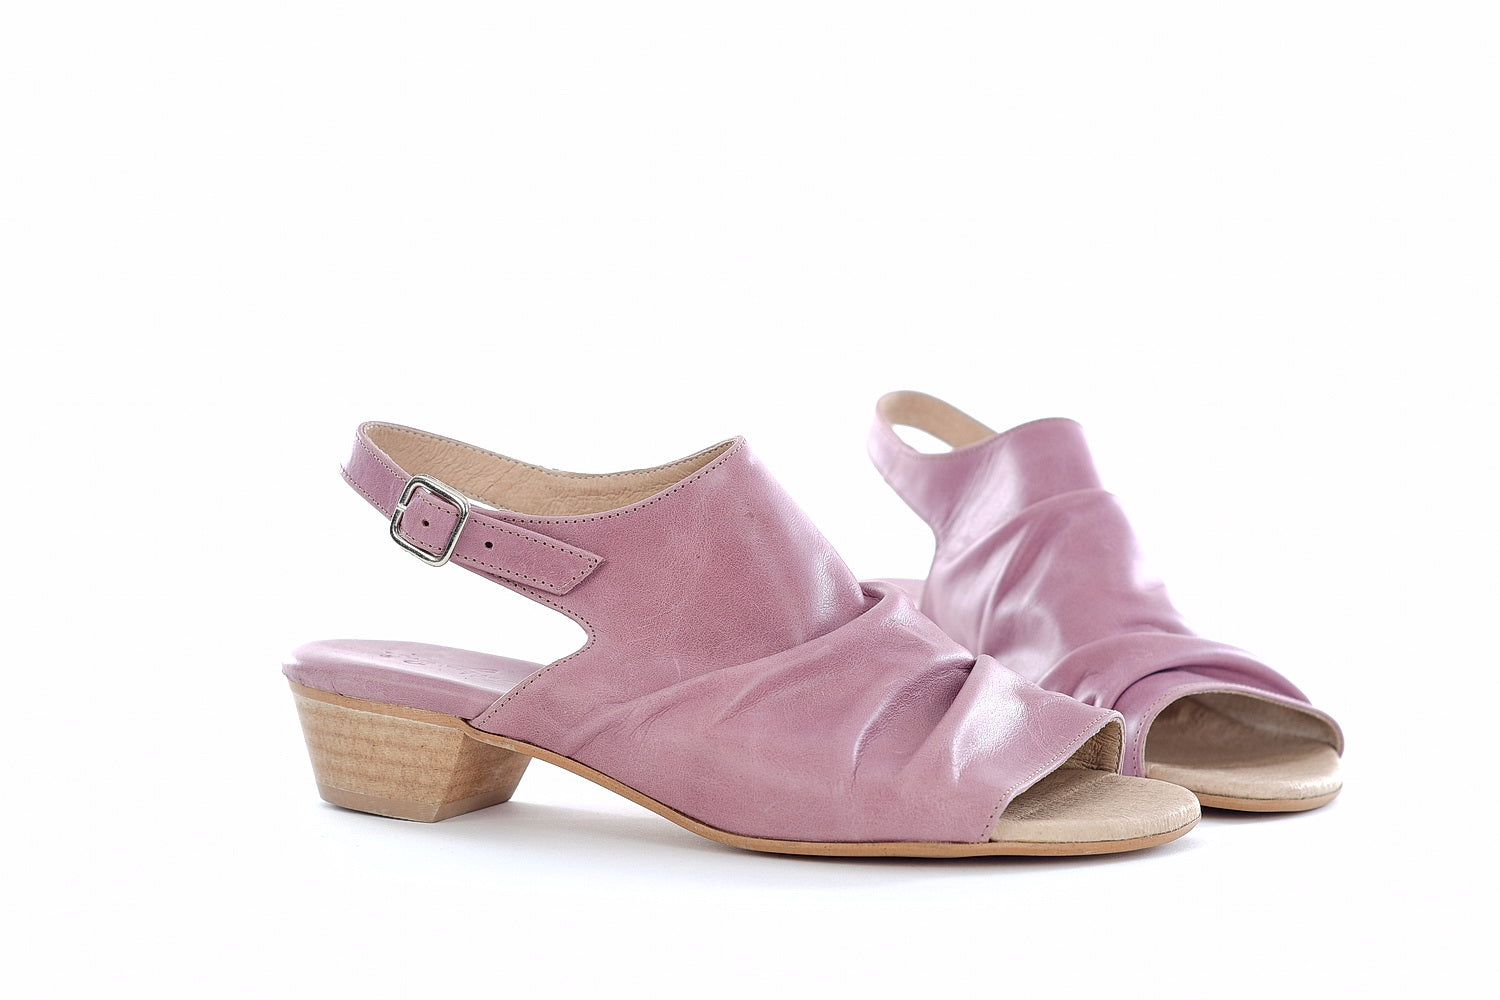 Elephants Sandals - Light Pink